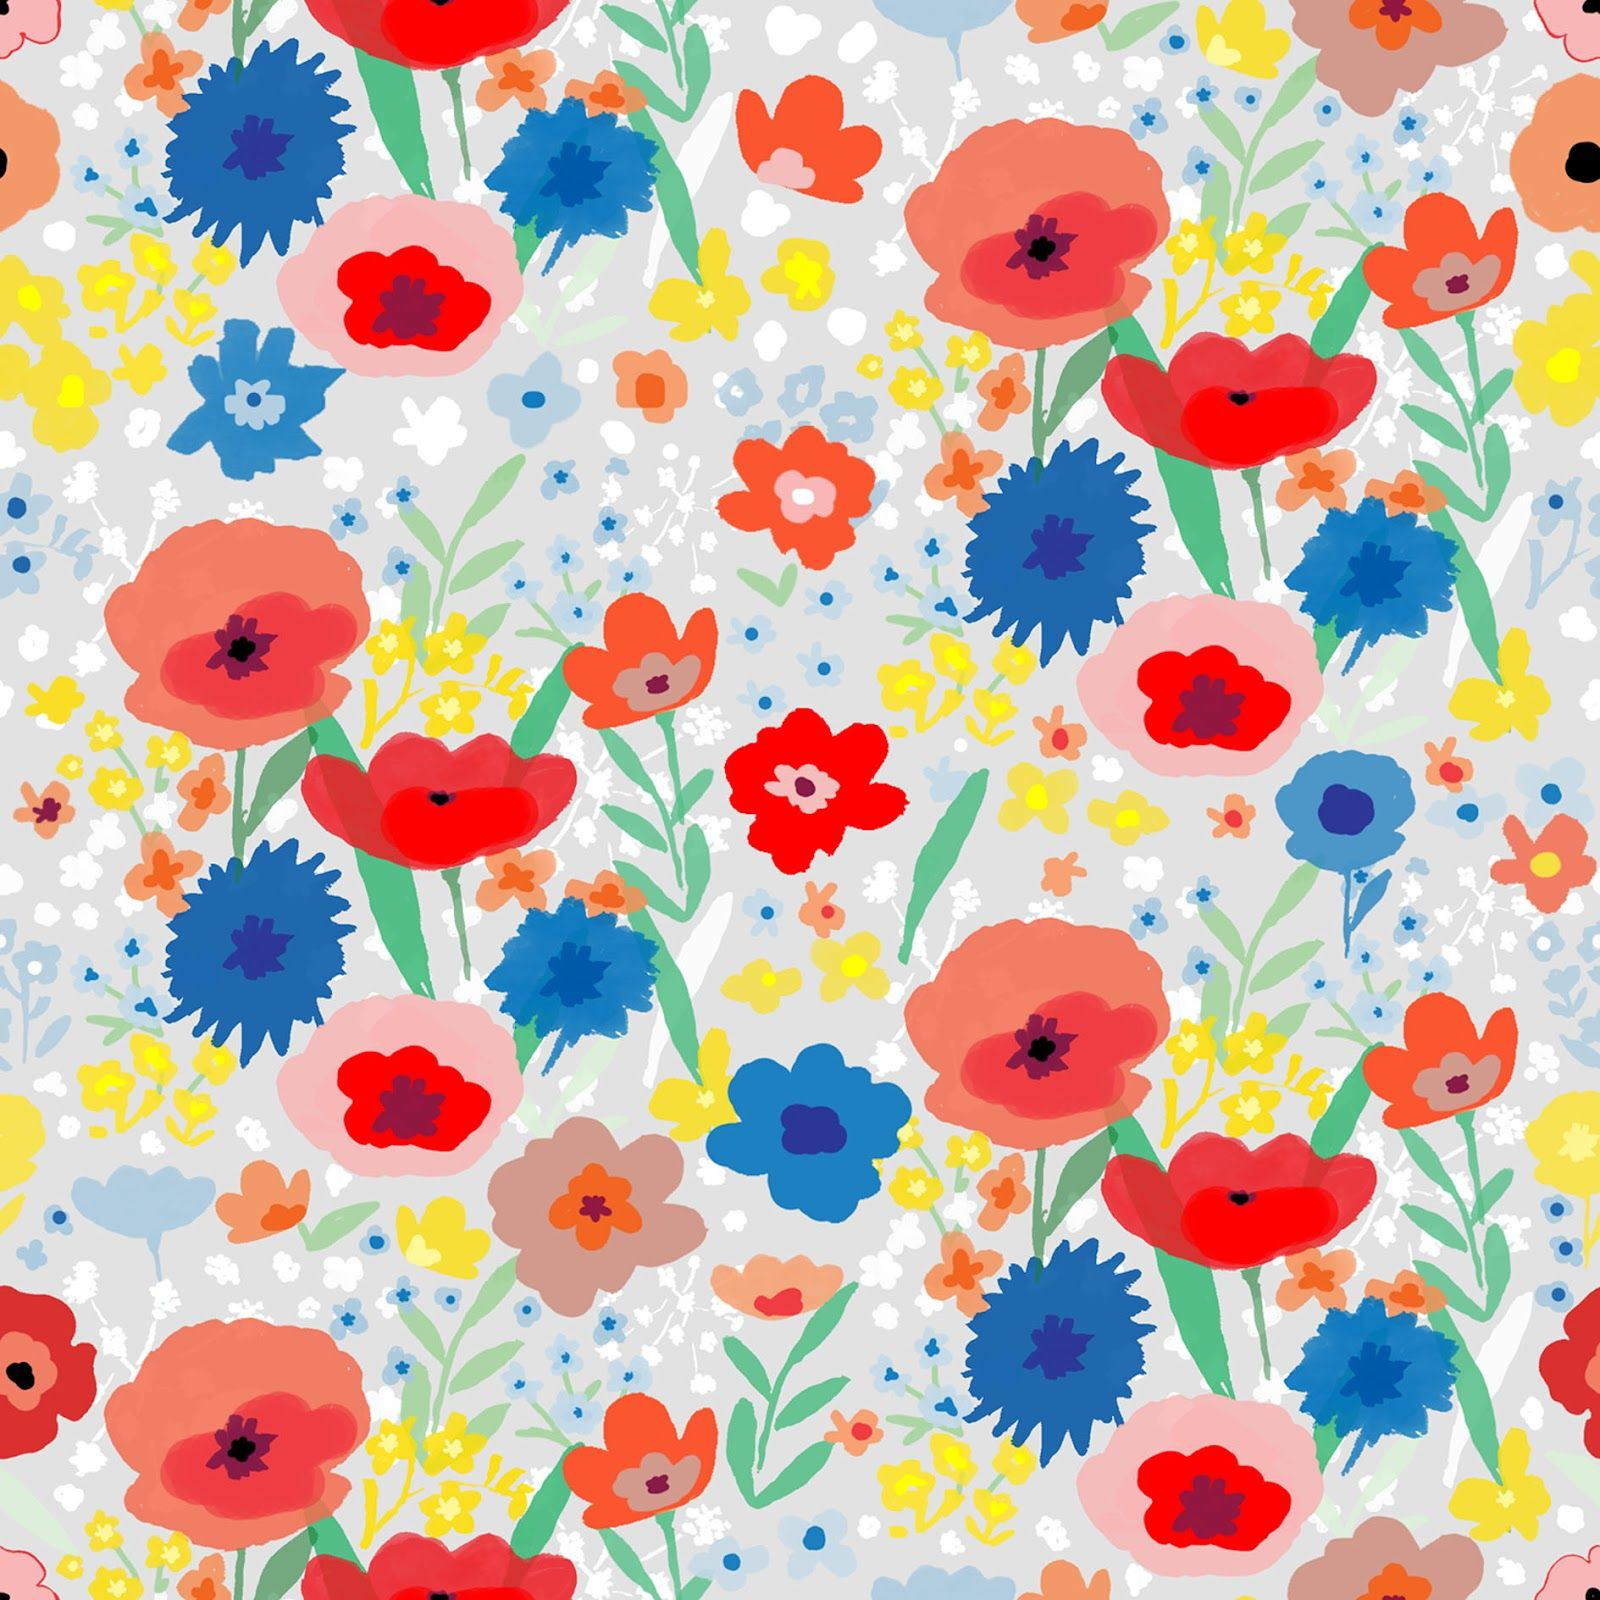 The Great British DIY Floral at V - print by Melanie Bowles, via diycouture